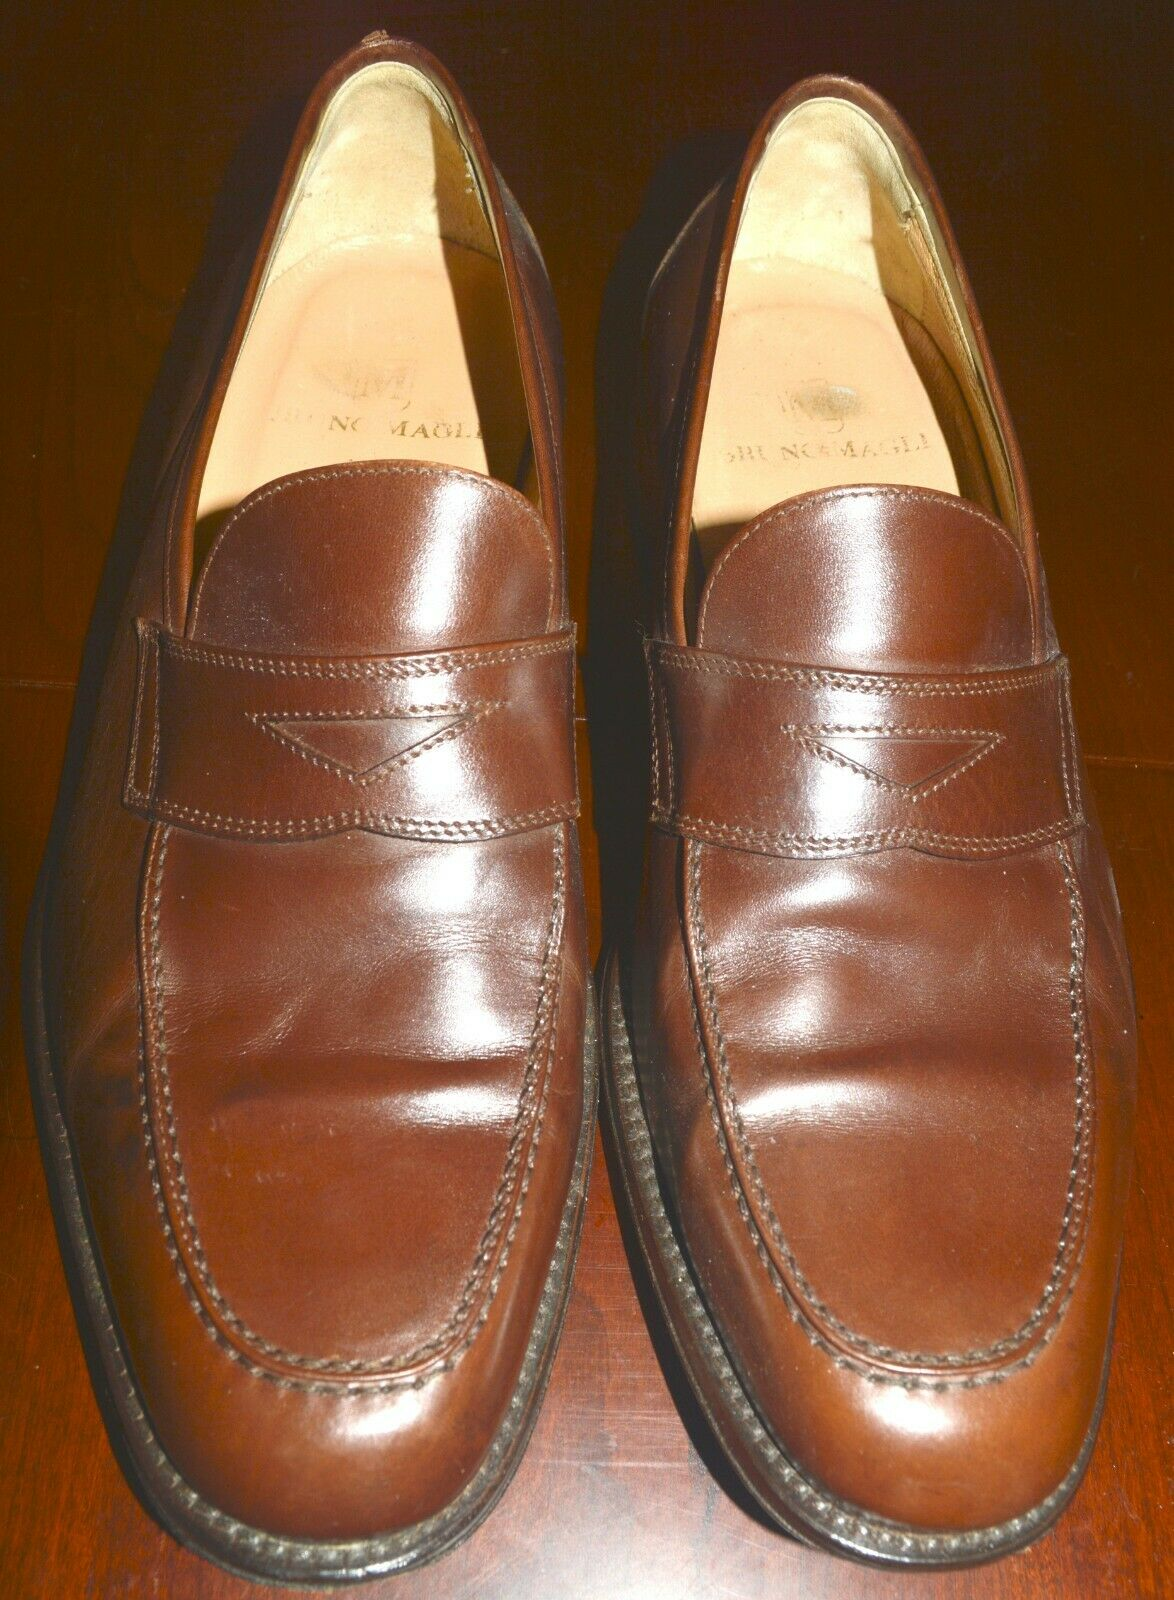 BRUNO MAGLI Vintage Mens Shoes Size 11 M Penny Loafers Brown Leather IVY Italy